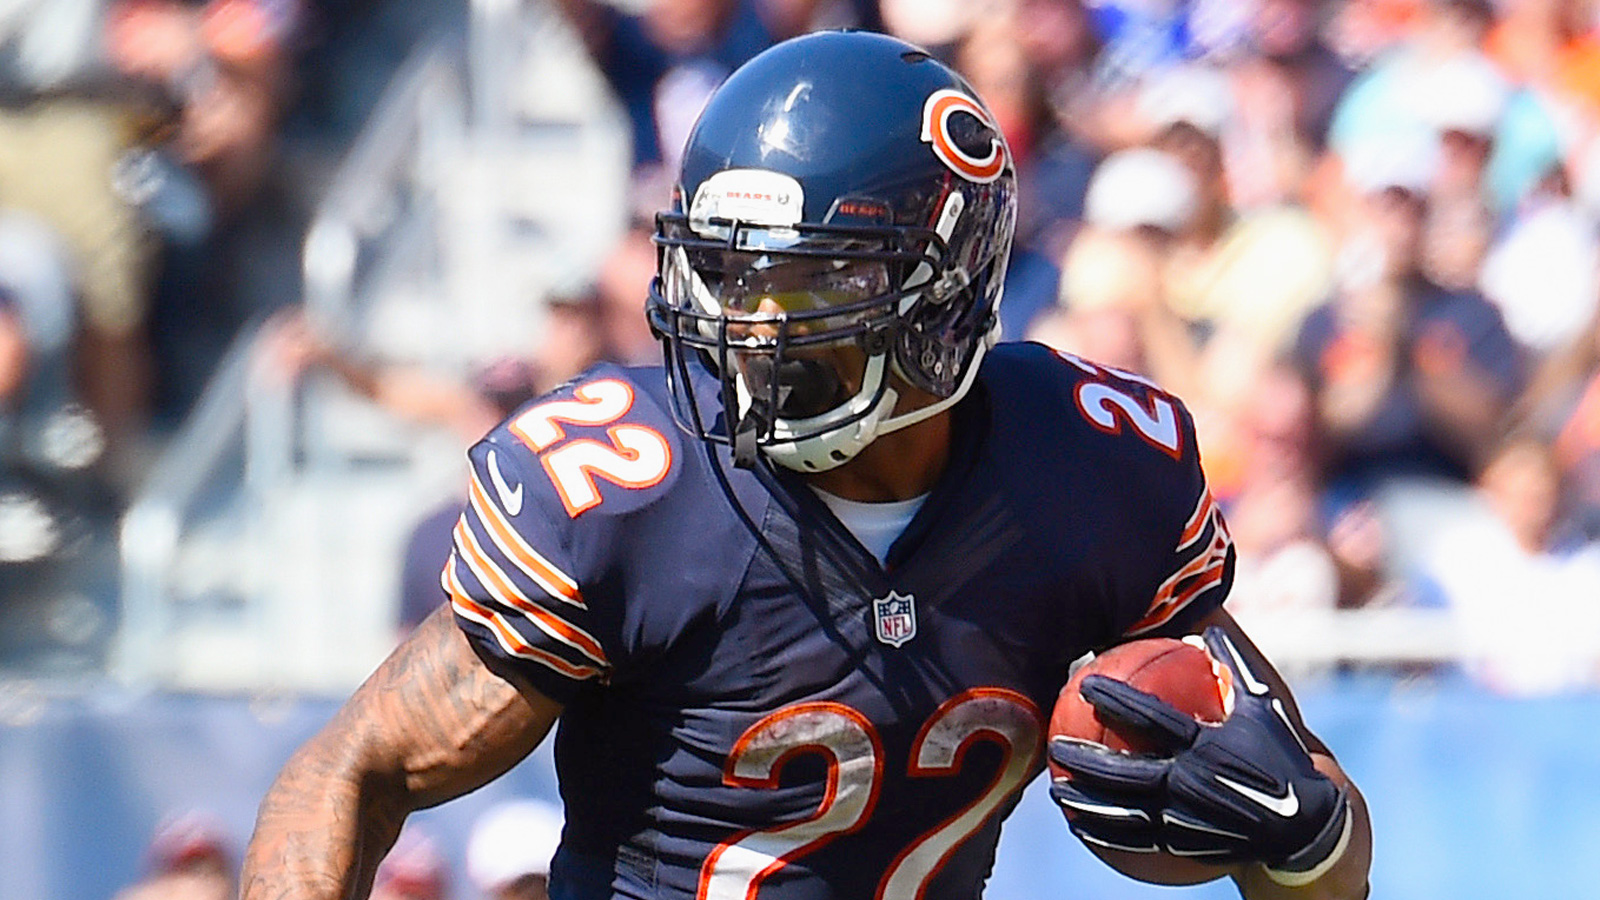 Bears may be hurting at receiver, but they're loaded at running back